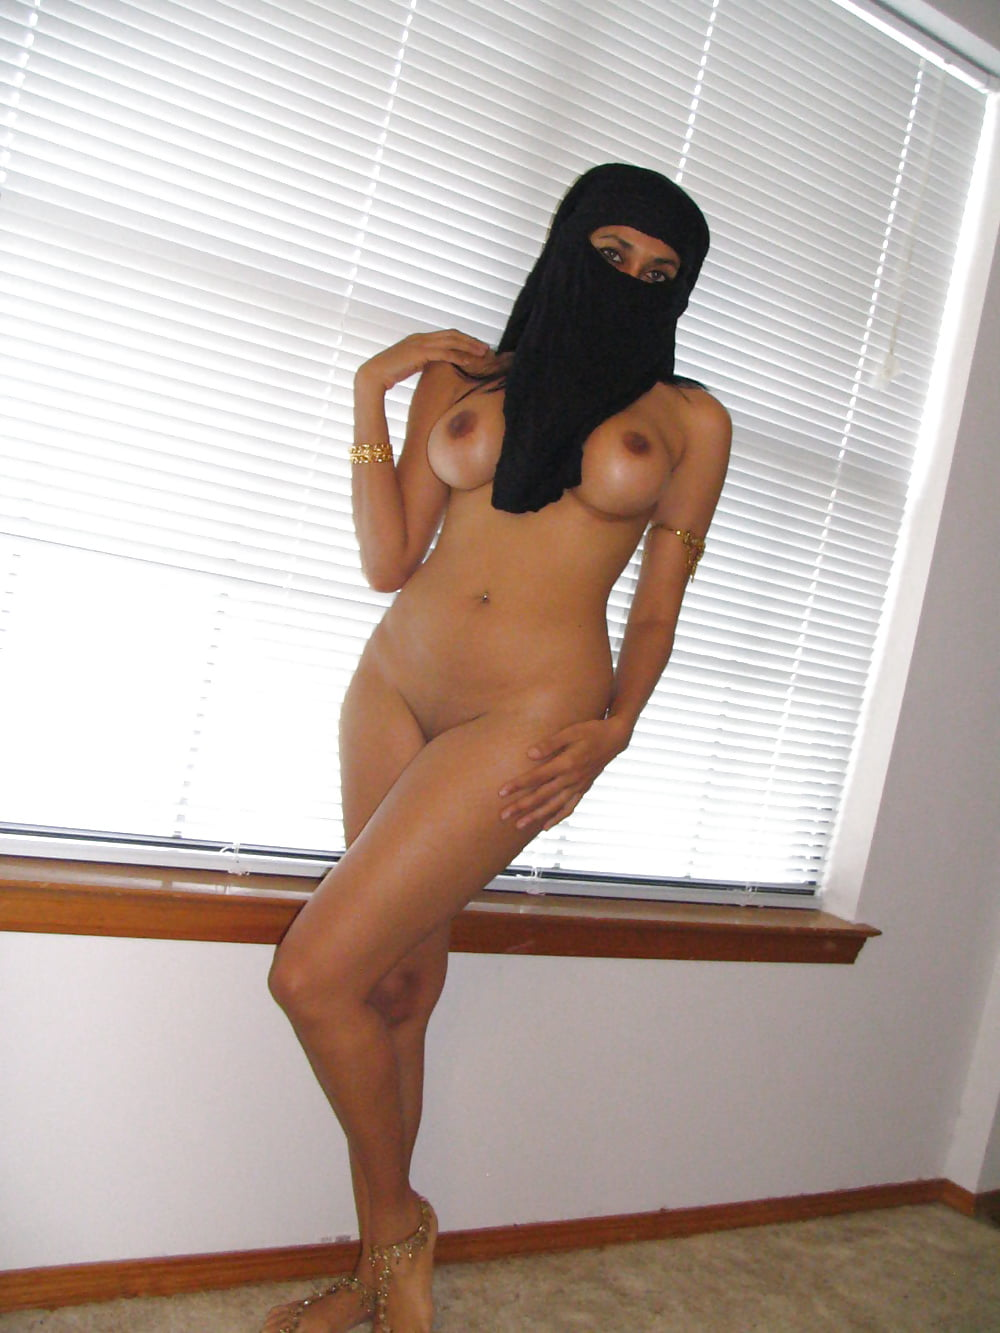 Arab girls in nudes, amrica full x x